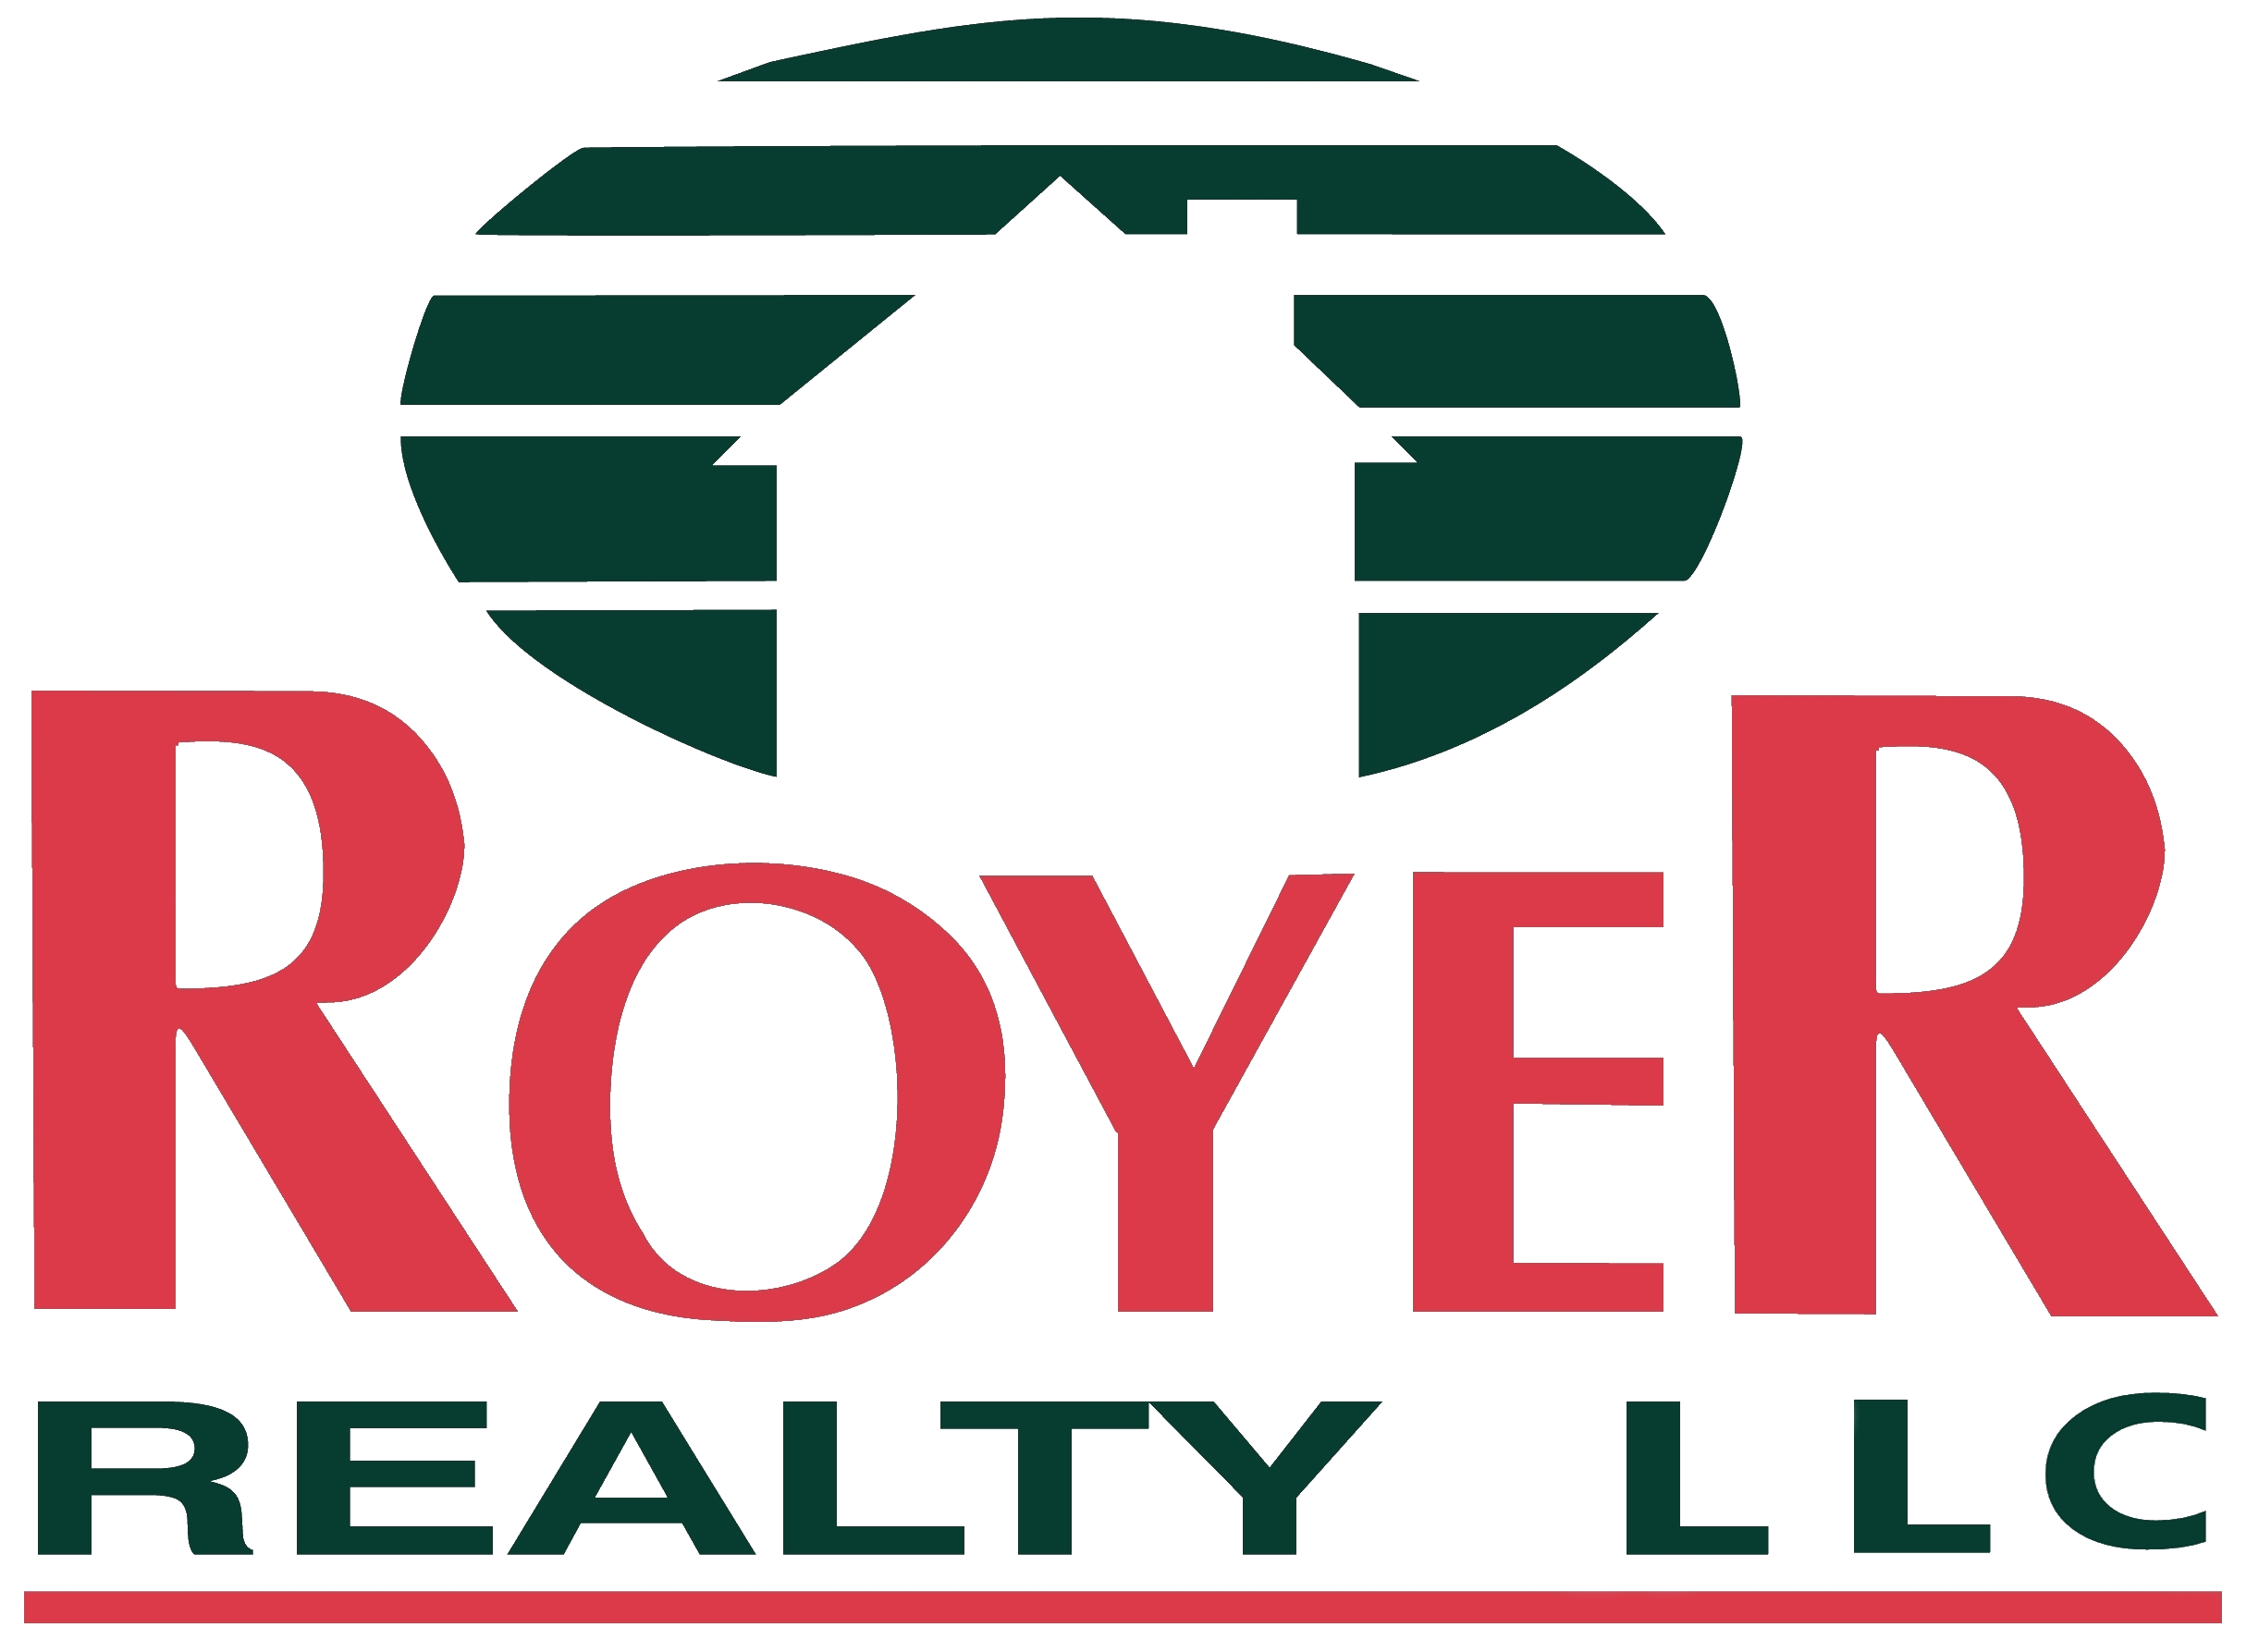 Royer Realty LLC logo